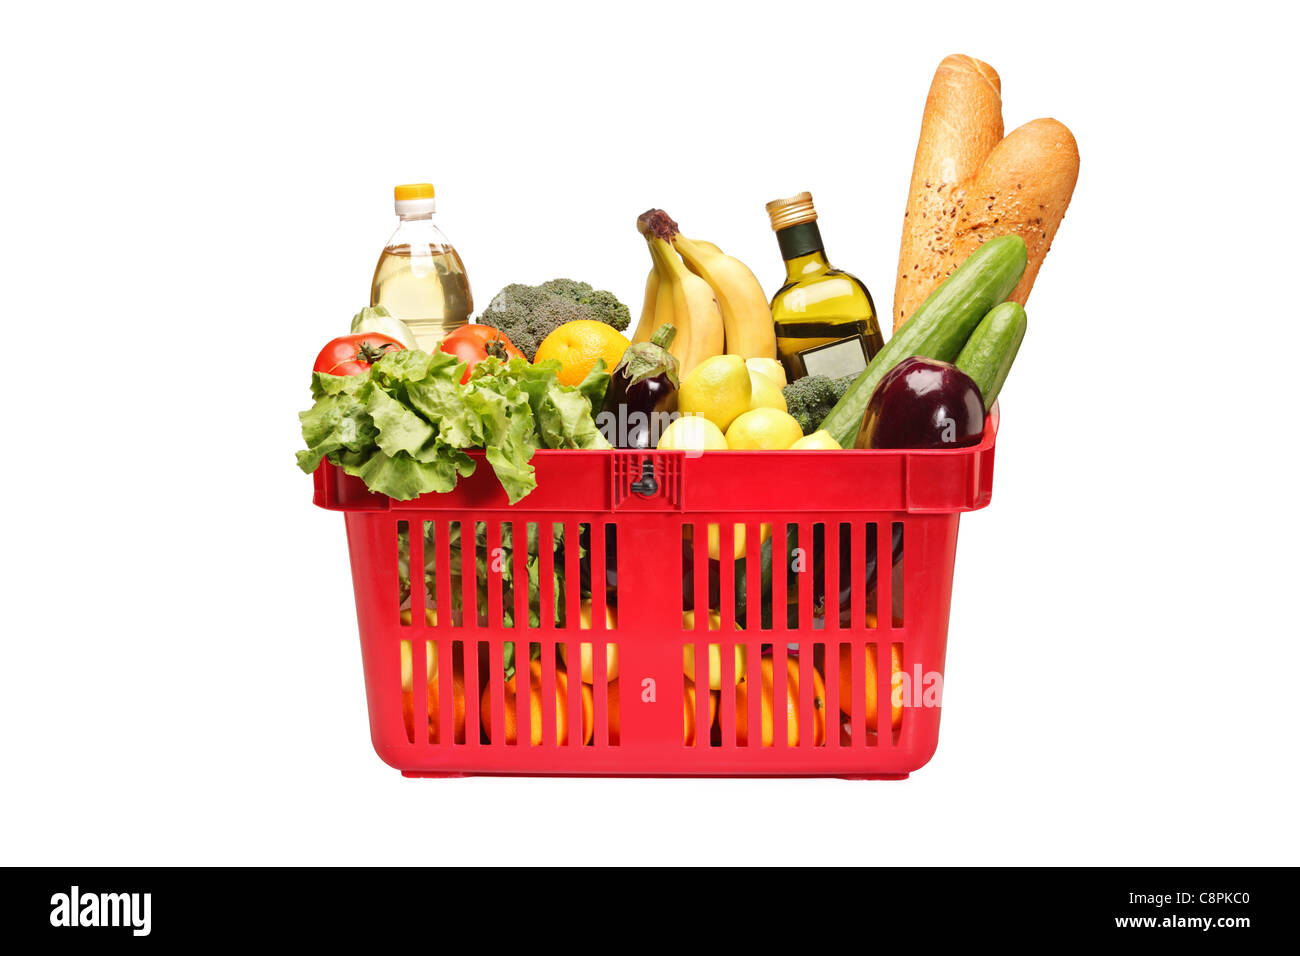 A studio shot of a shopping basket full of groceries - Stock Image